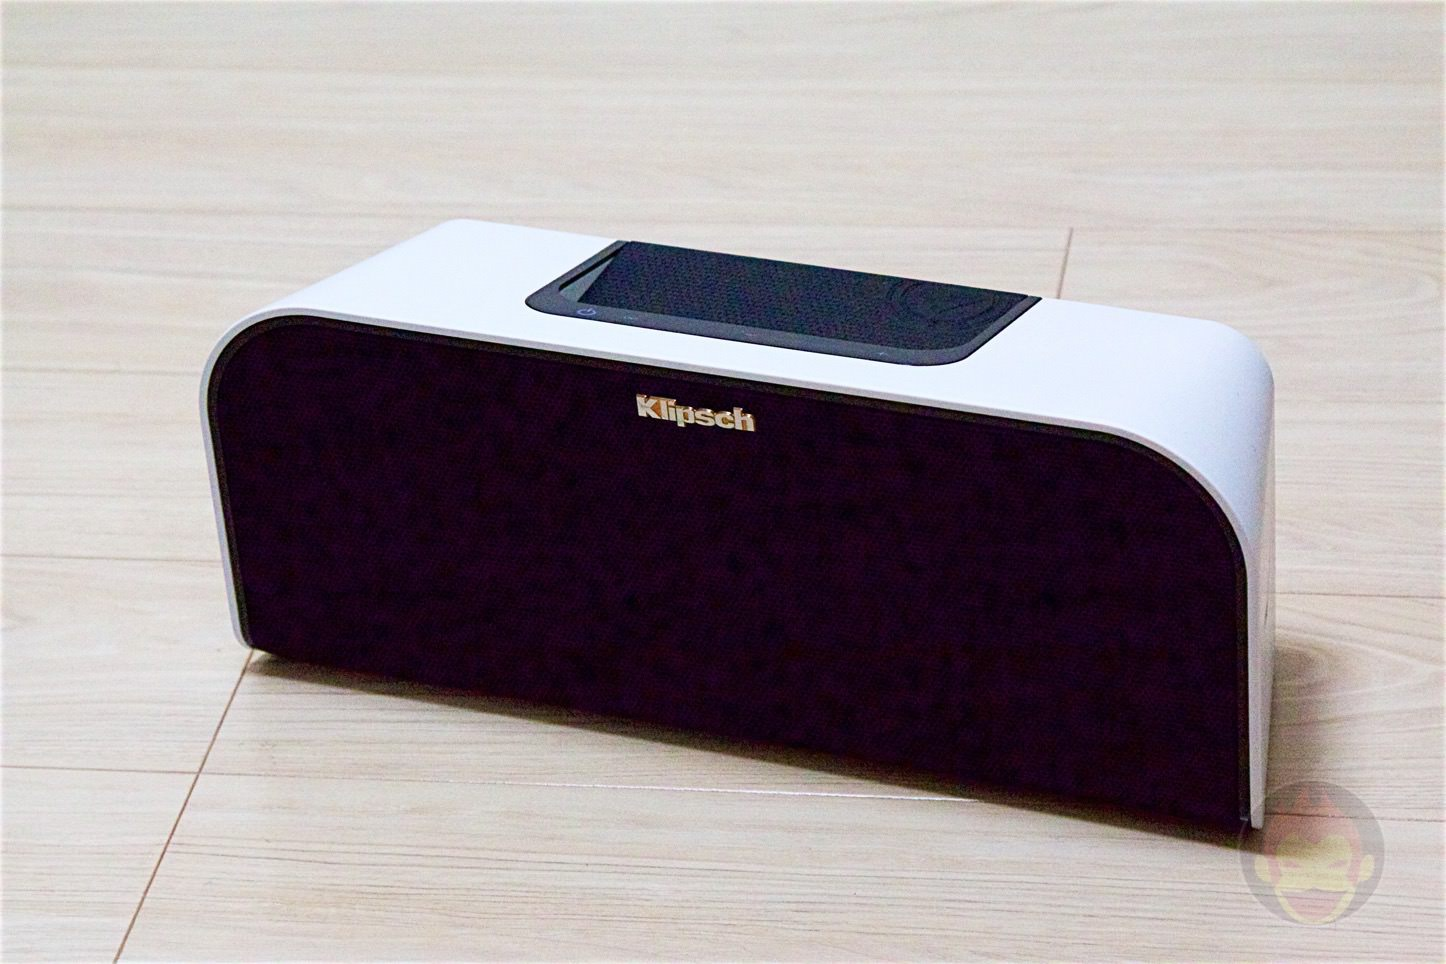 Klipsch-KMC3-Bluetooth-Speakers-08.jpg